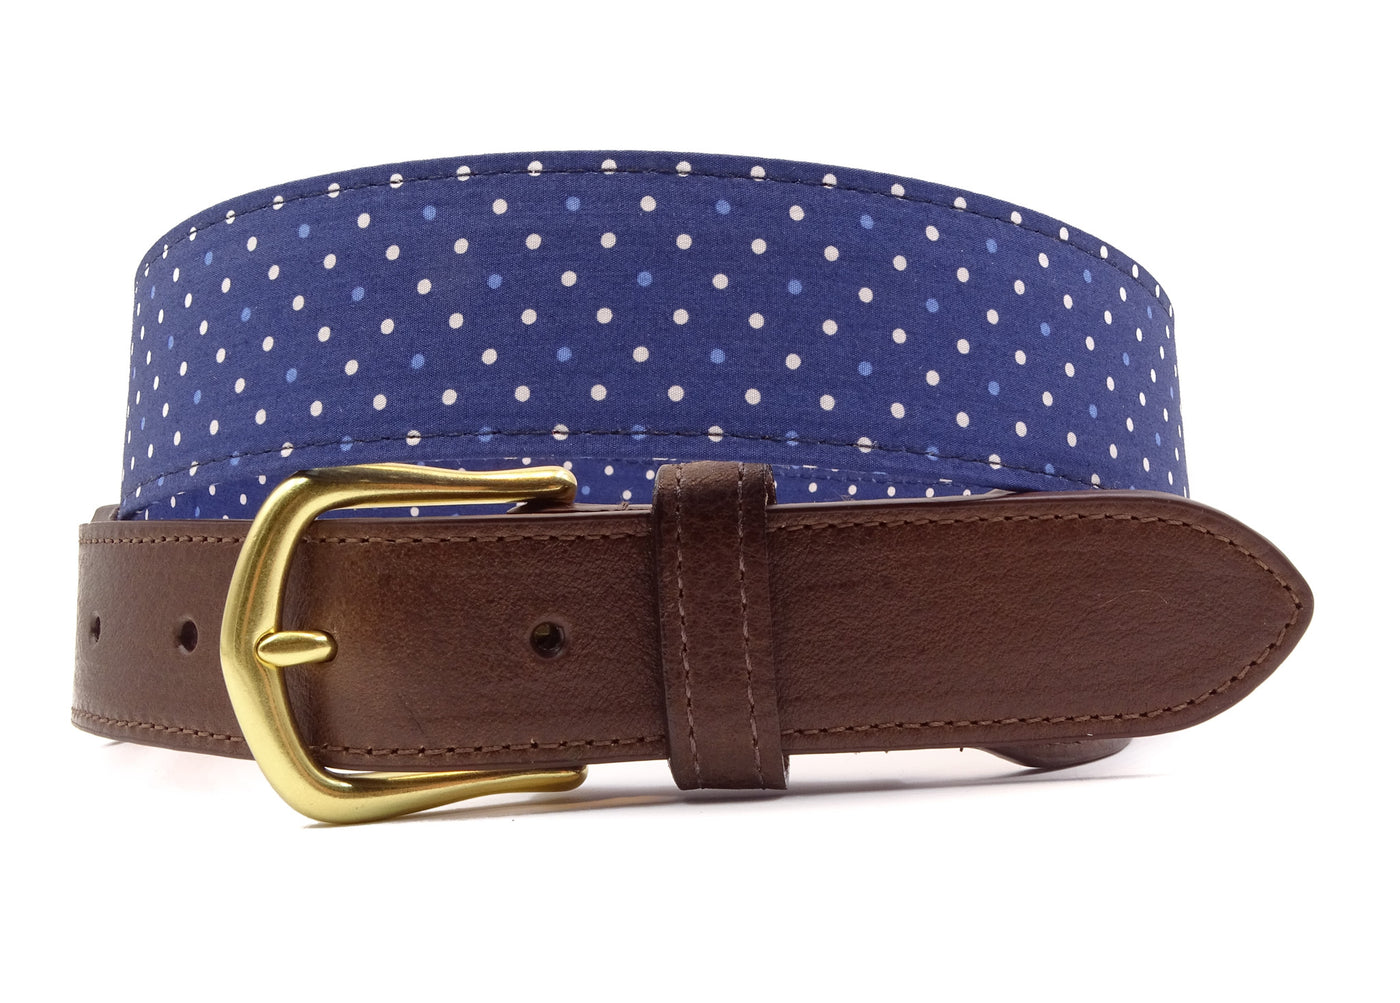 Blue & White Polka Dot Cotton Leather Tab Belt - FH Wadsworth